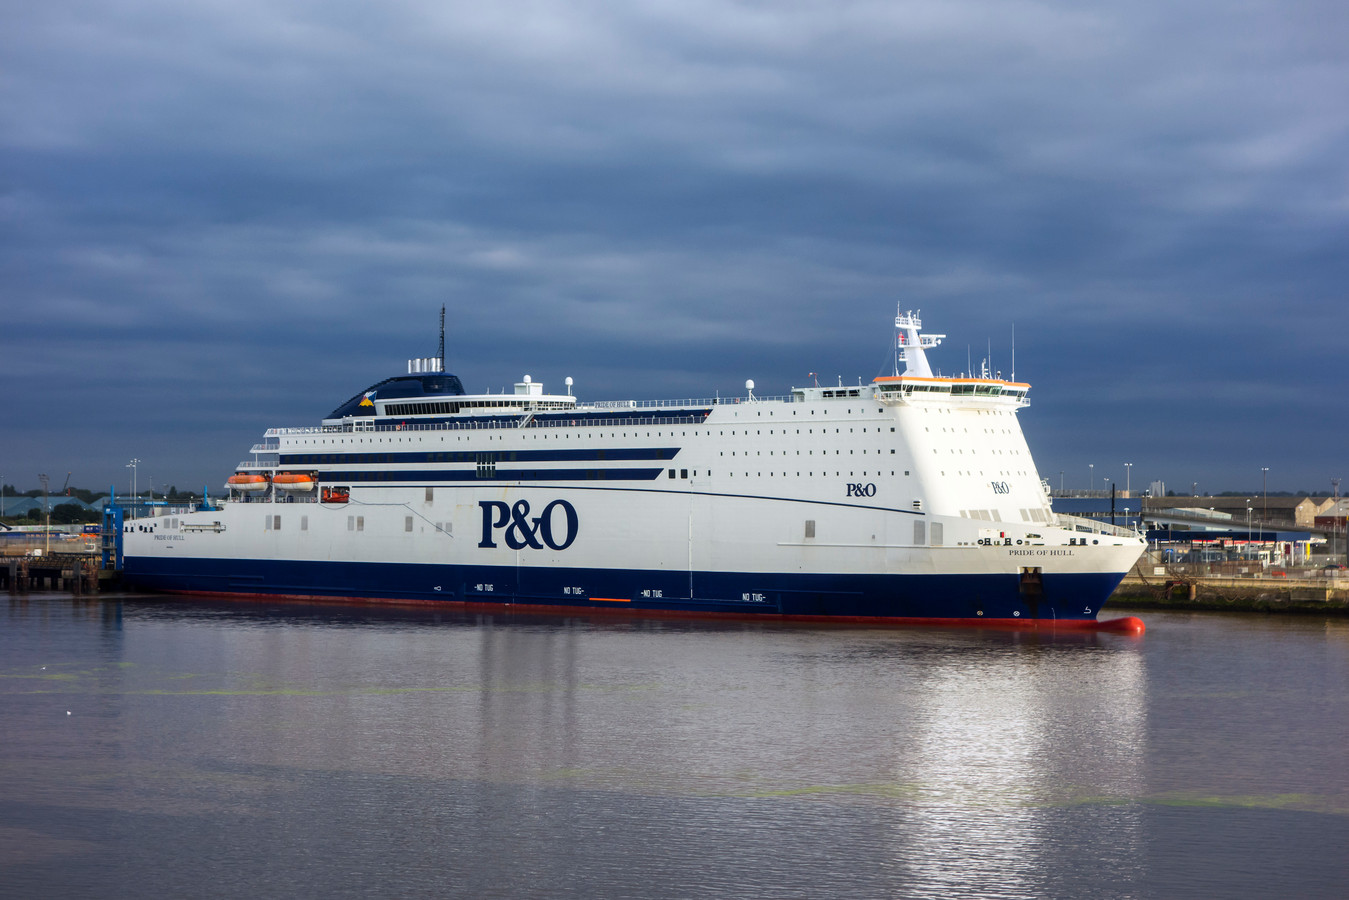 route P&O ferries